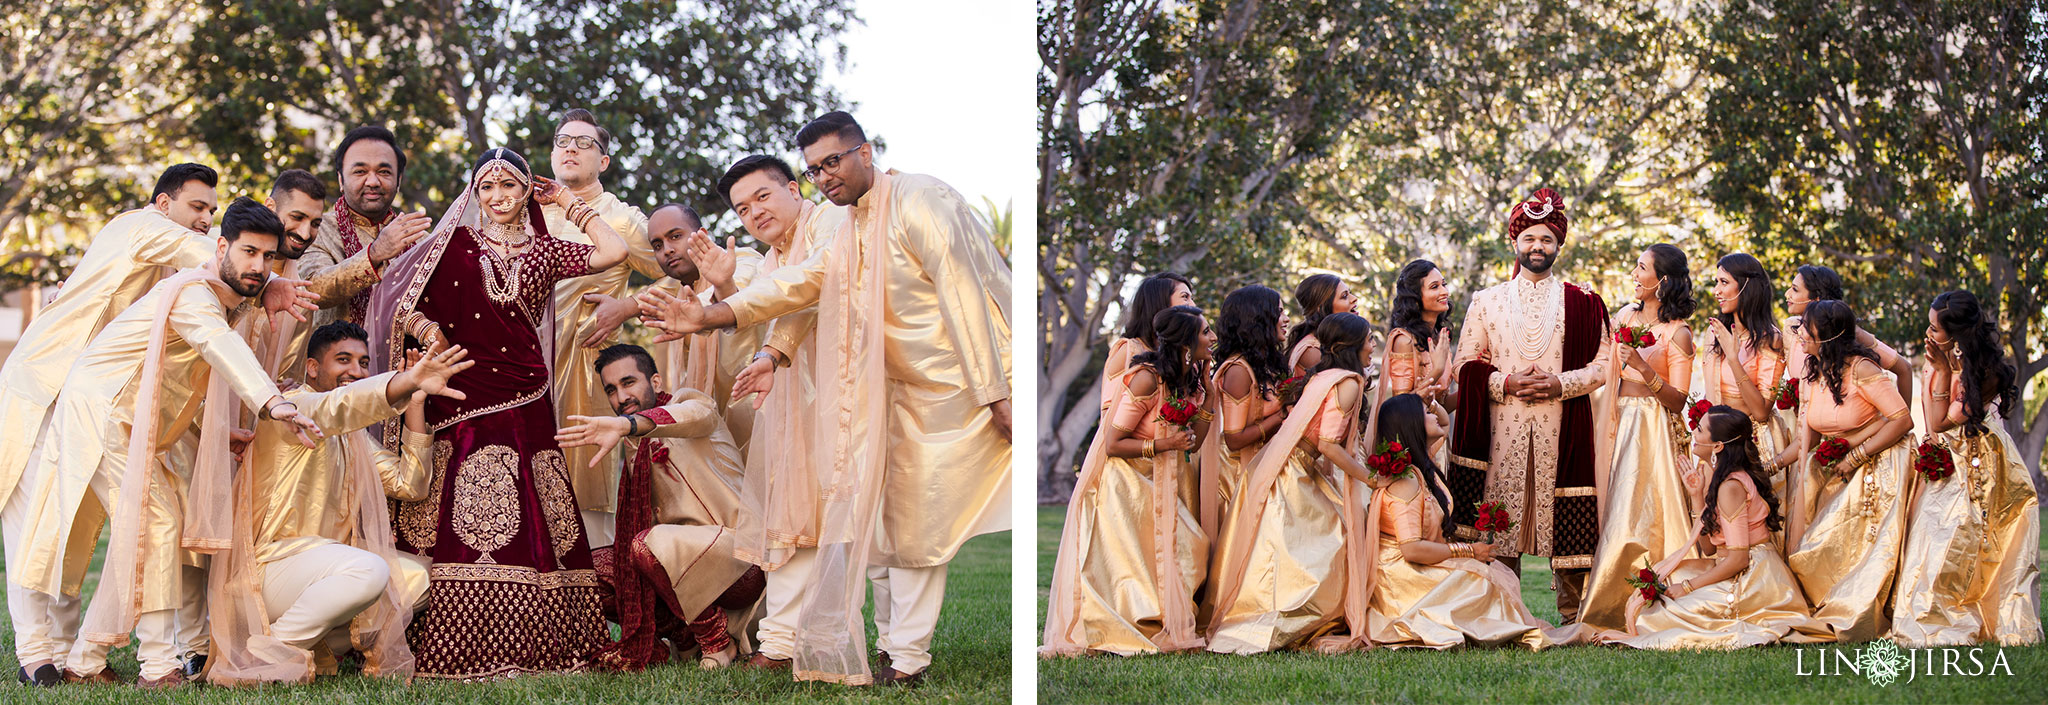 18 hotel irvine orange county indian wedding photography